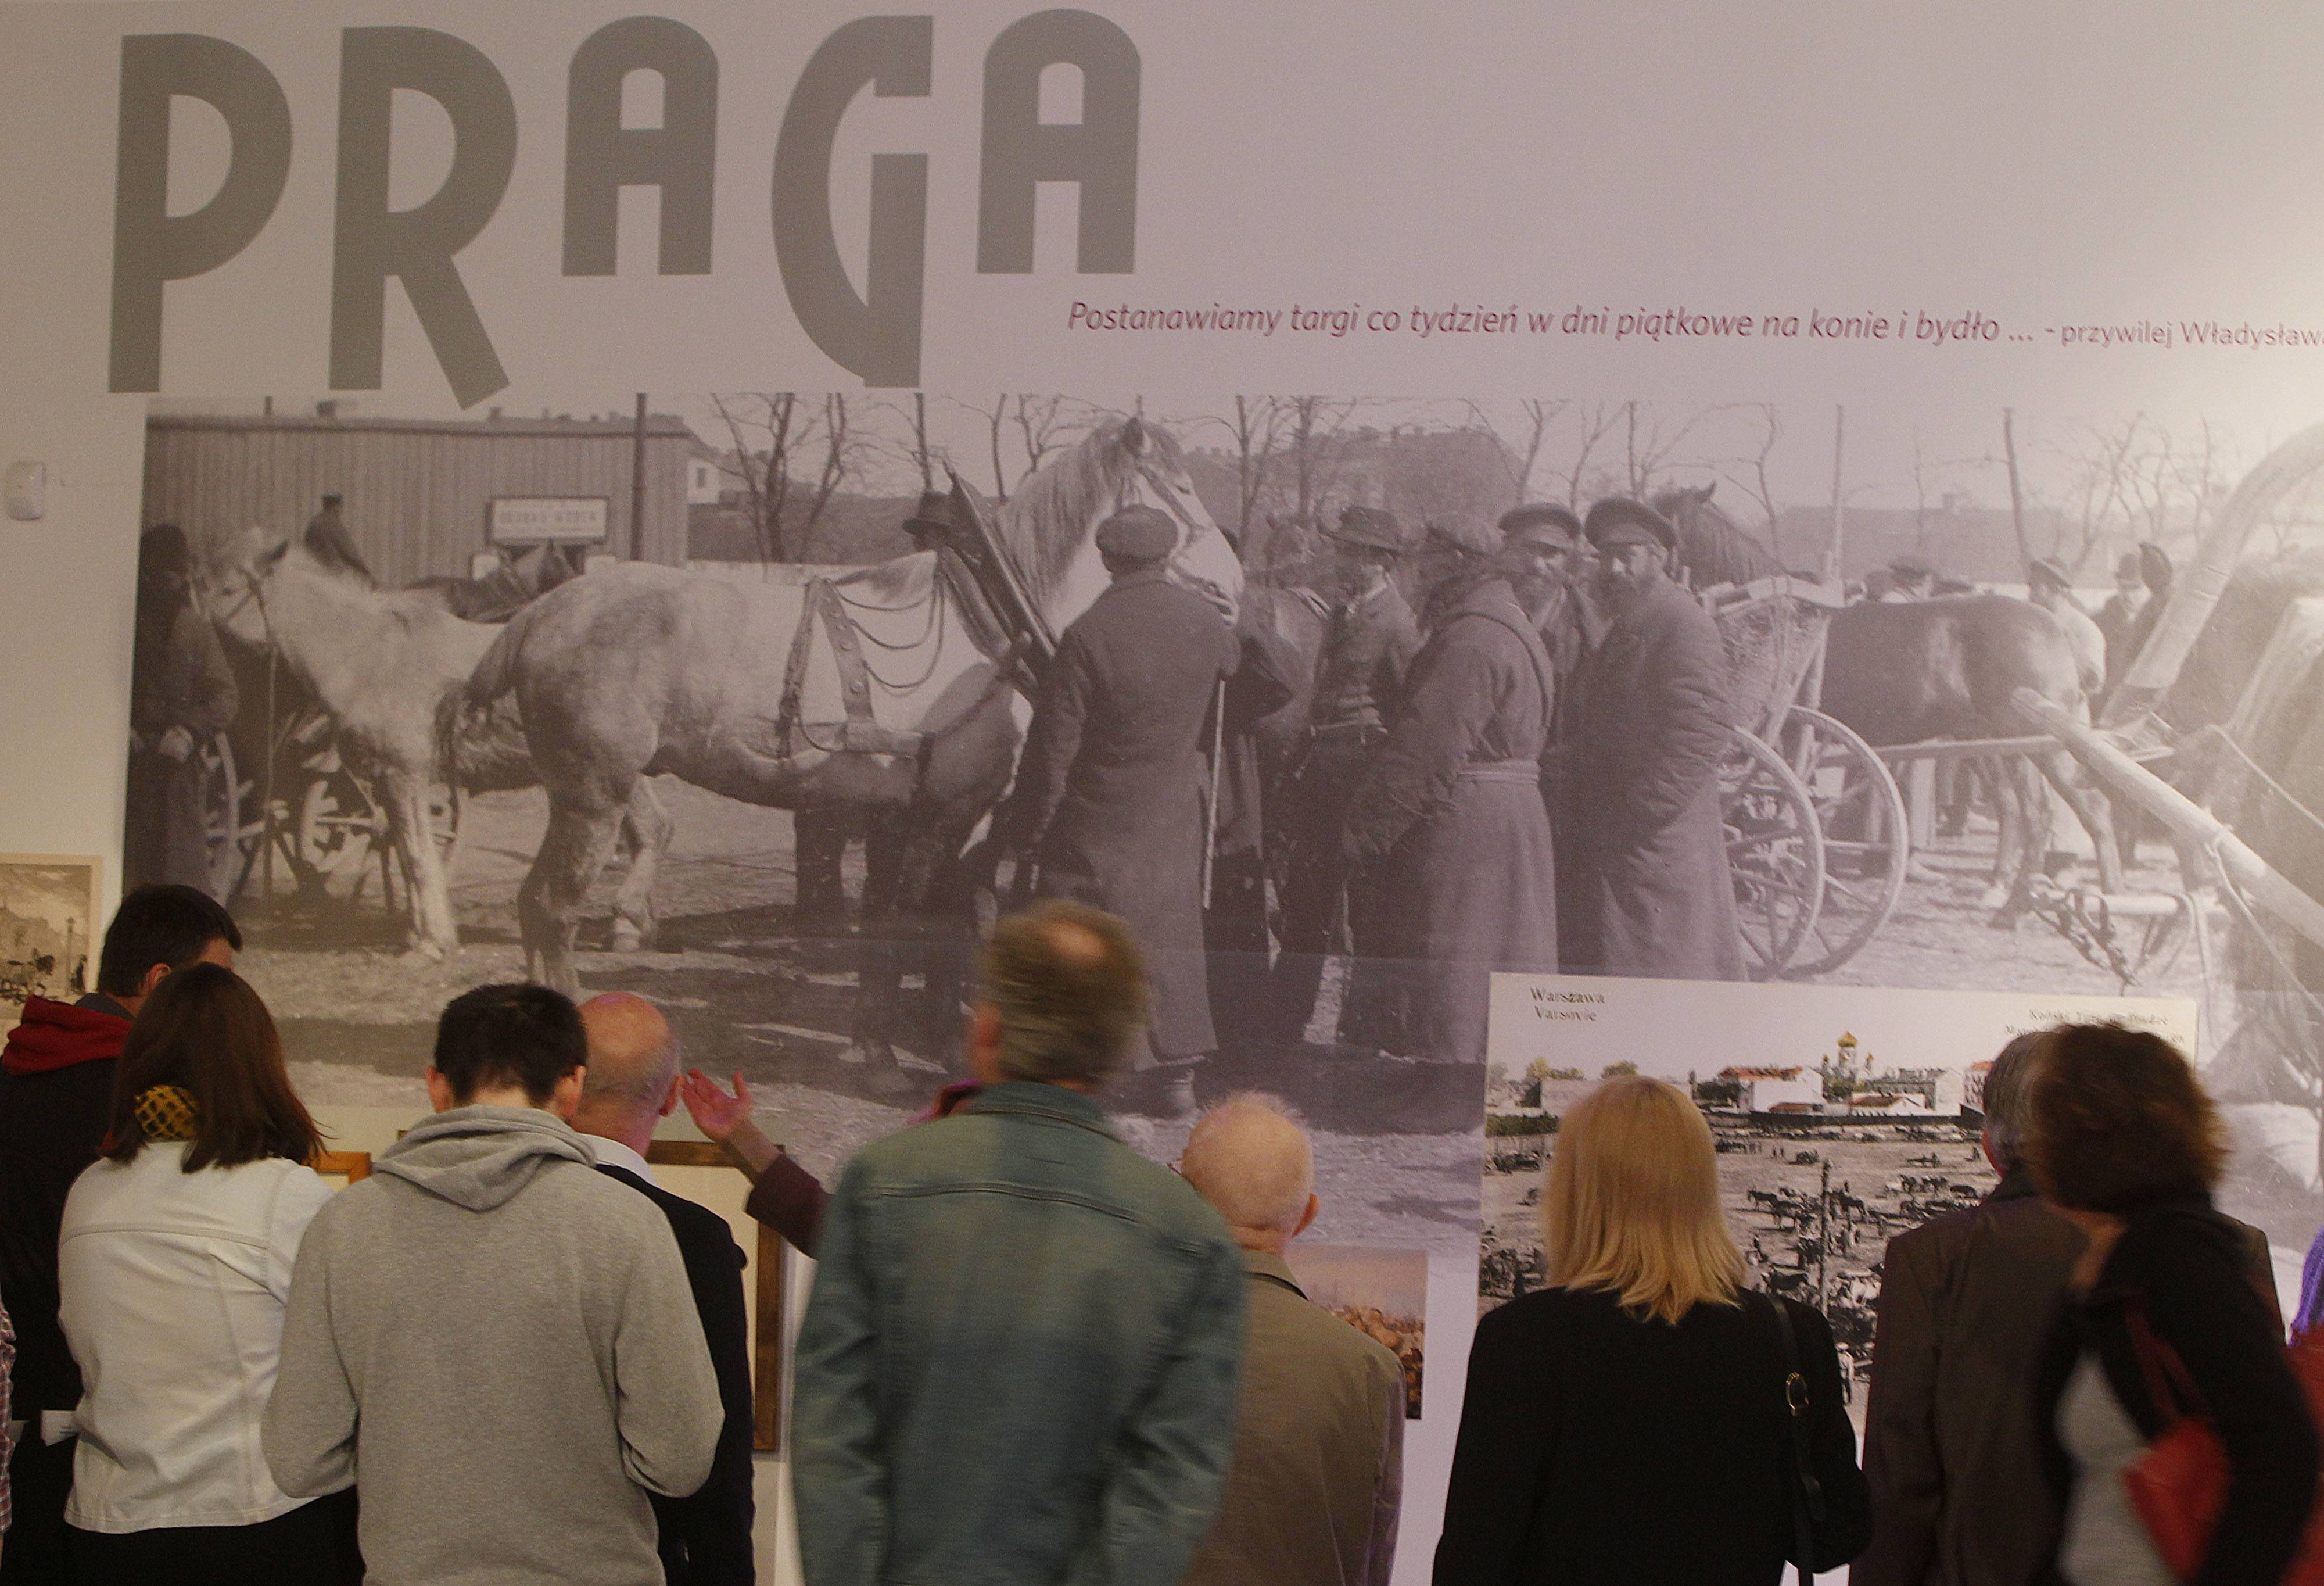 People view a picture of the horse market in pre-World War II Warsaw's Praga district, at a new exhibition by the Museum of the History of Polish Jews, in Warsaw, Poland.